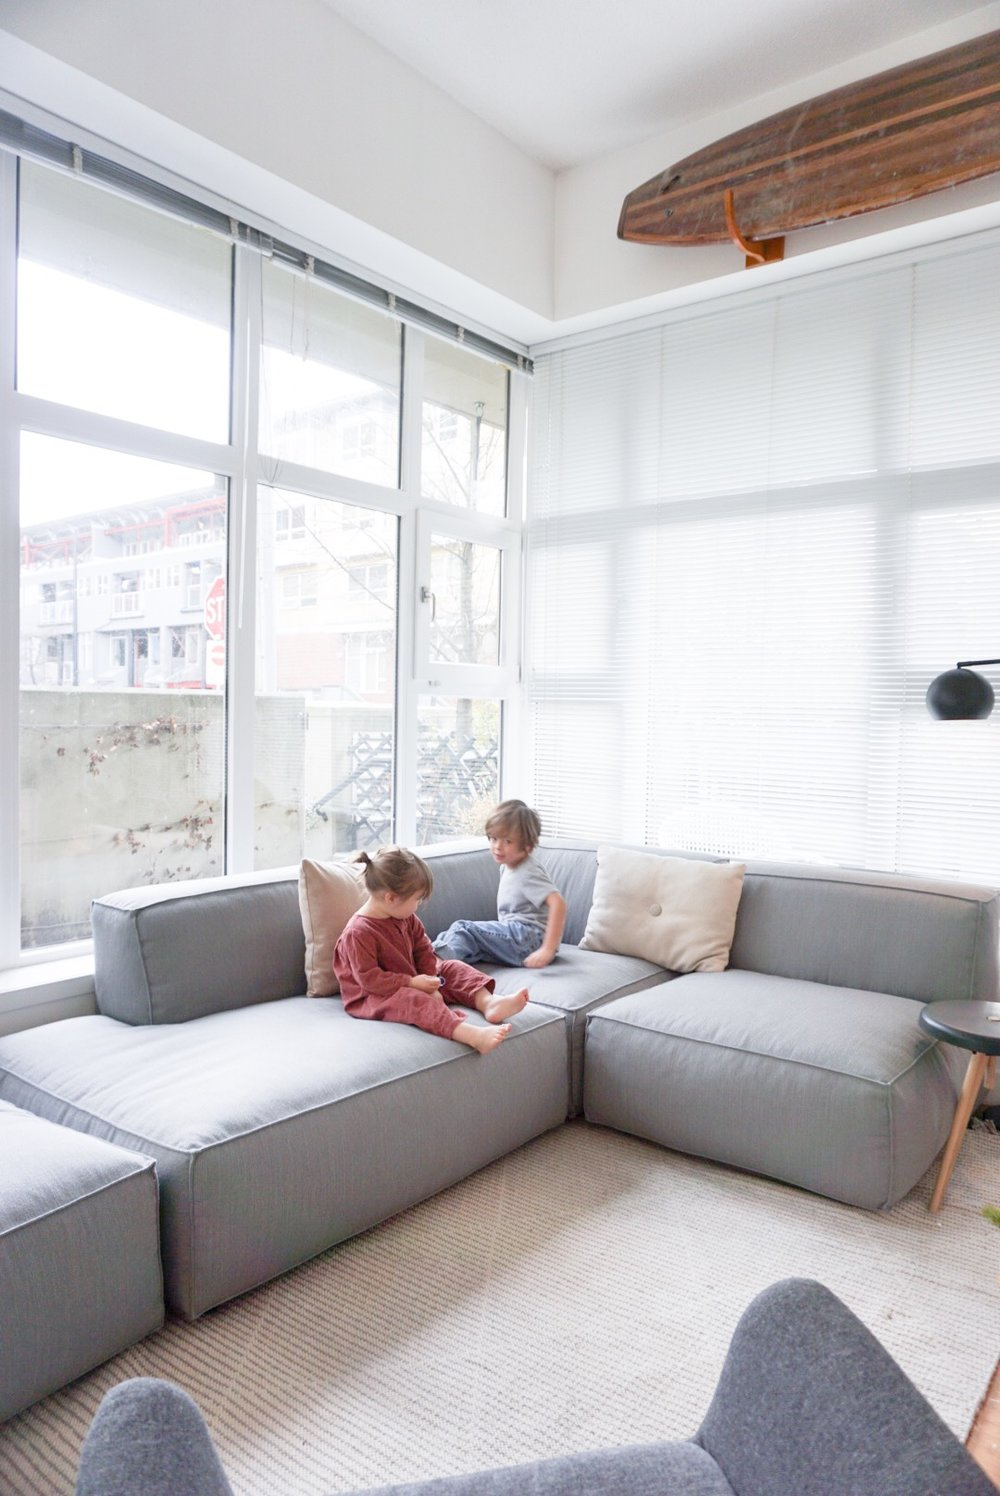 Performance Testers, on the new Modular Solae Sofa in our 600 square foot apartment.